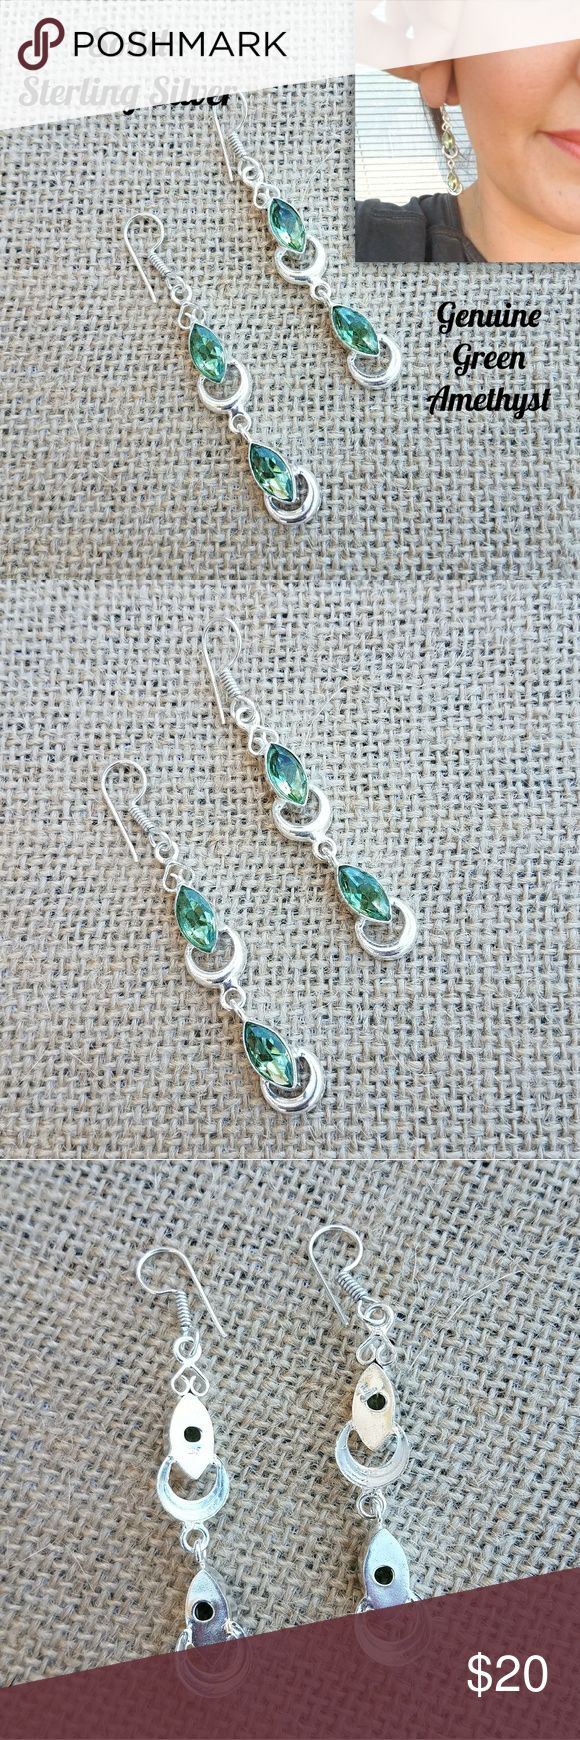 "🌹SALE Green Amethyst Sterling Silver Earrings 🌹I'm currently running an additional sale. See listing at the top of my closet for details.🌹  REDUCED! PRICE FIRM UNLESS BUNDLED!   These earrings are new. They're solid sterling silver with genuine Green Amethyst stones. They're approximately 2.8"" long & 925 stamped (4th pic).  *This is handmade, so it's not perfect. Please look at the pics carefully. They're part of the description. Jewelry Earrings"